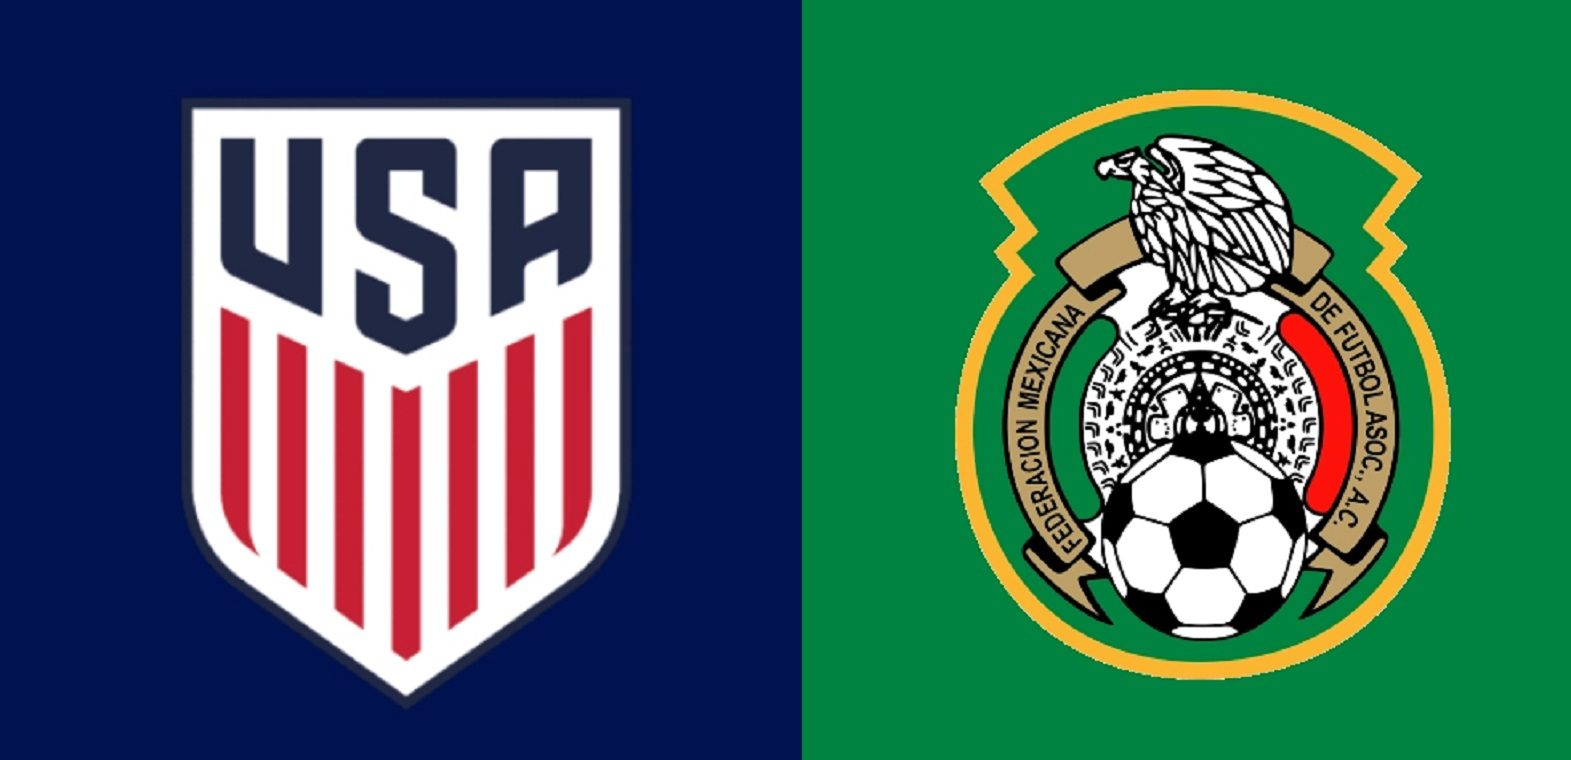 Gold Cup 2021 Finals: USA vs Mexico Football Predictions and Betting Odds, US Wins 1-0